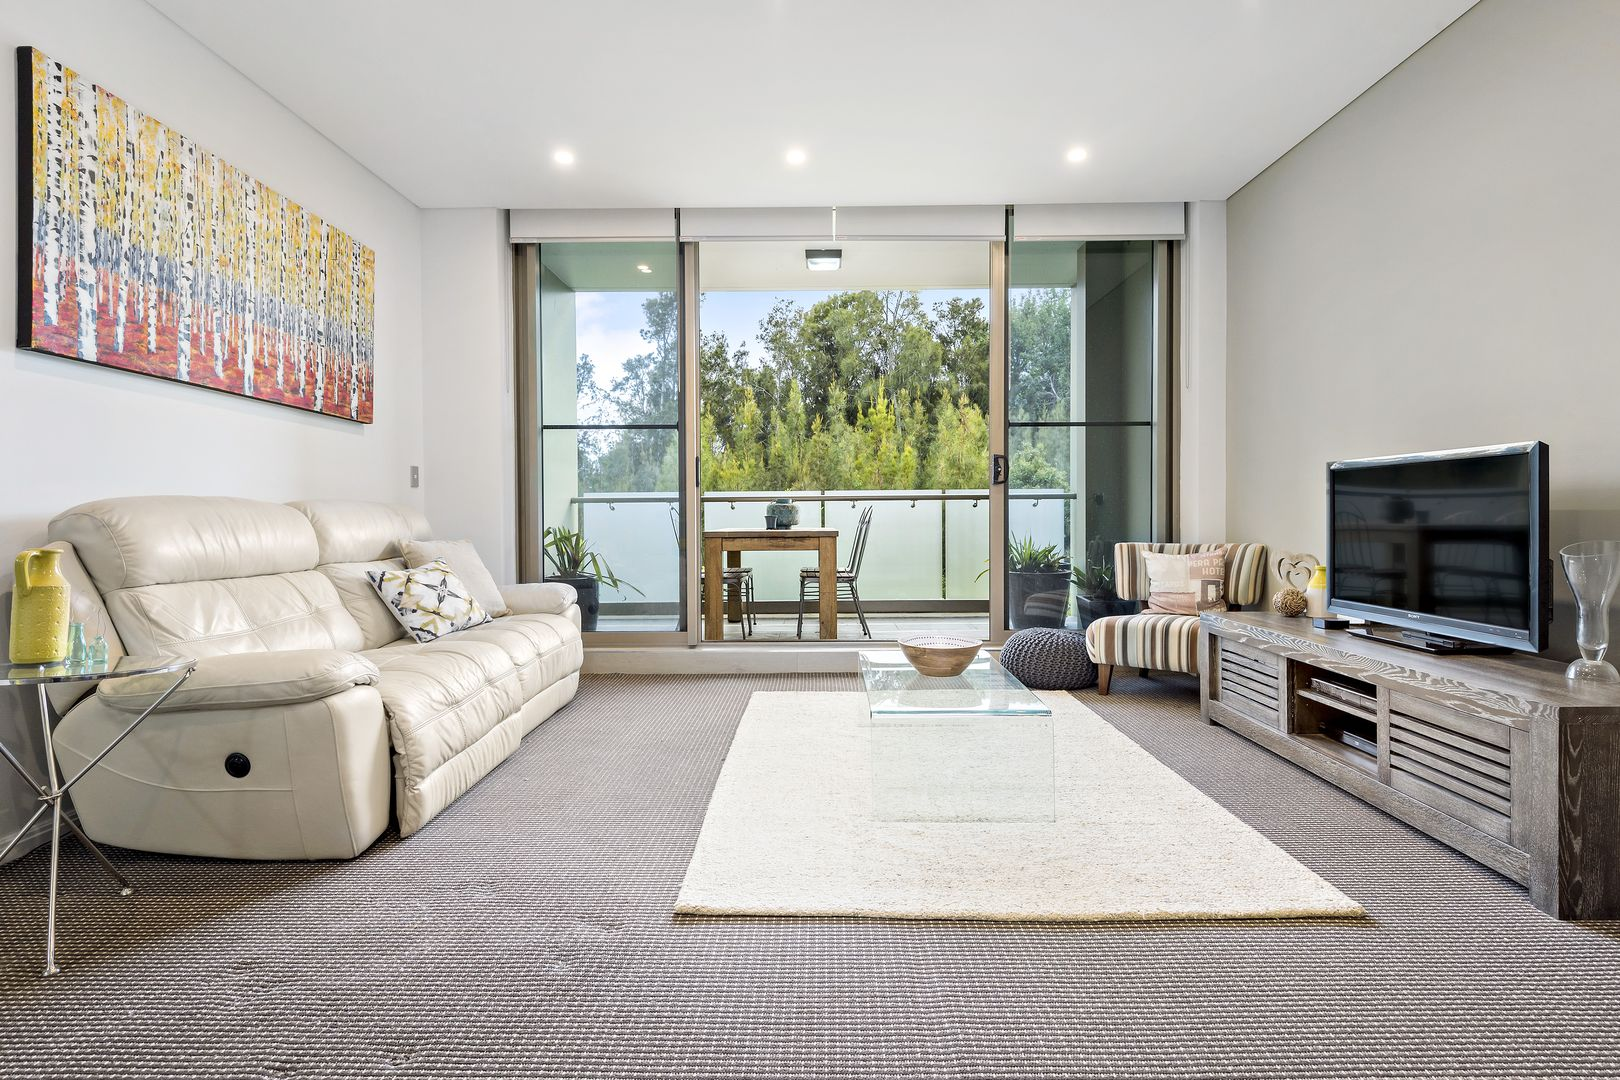 137/6 Firetail Drive, Warriewood NSW 2102, Image 0